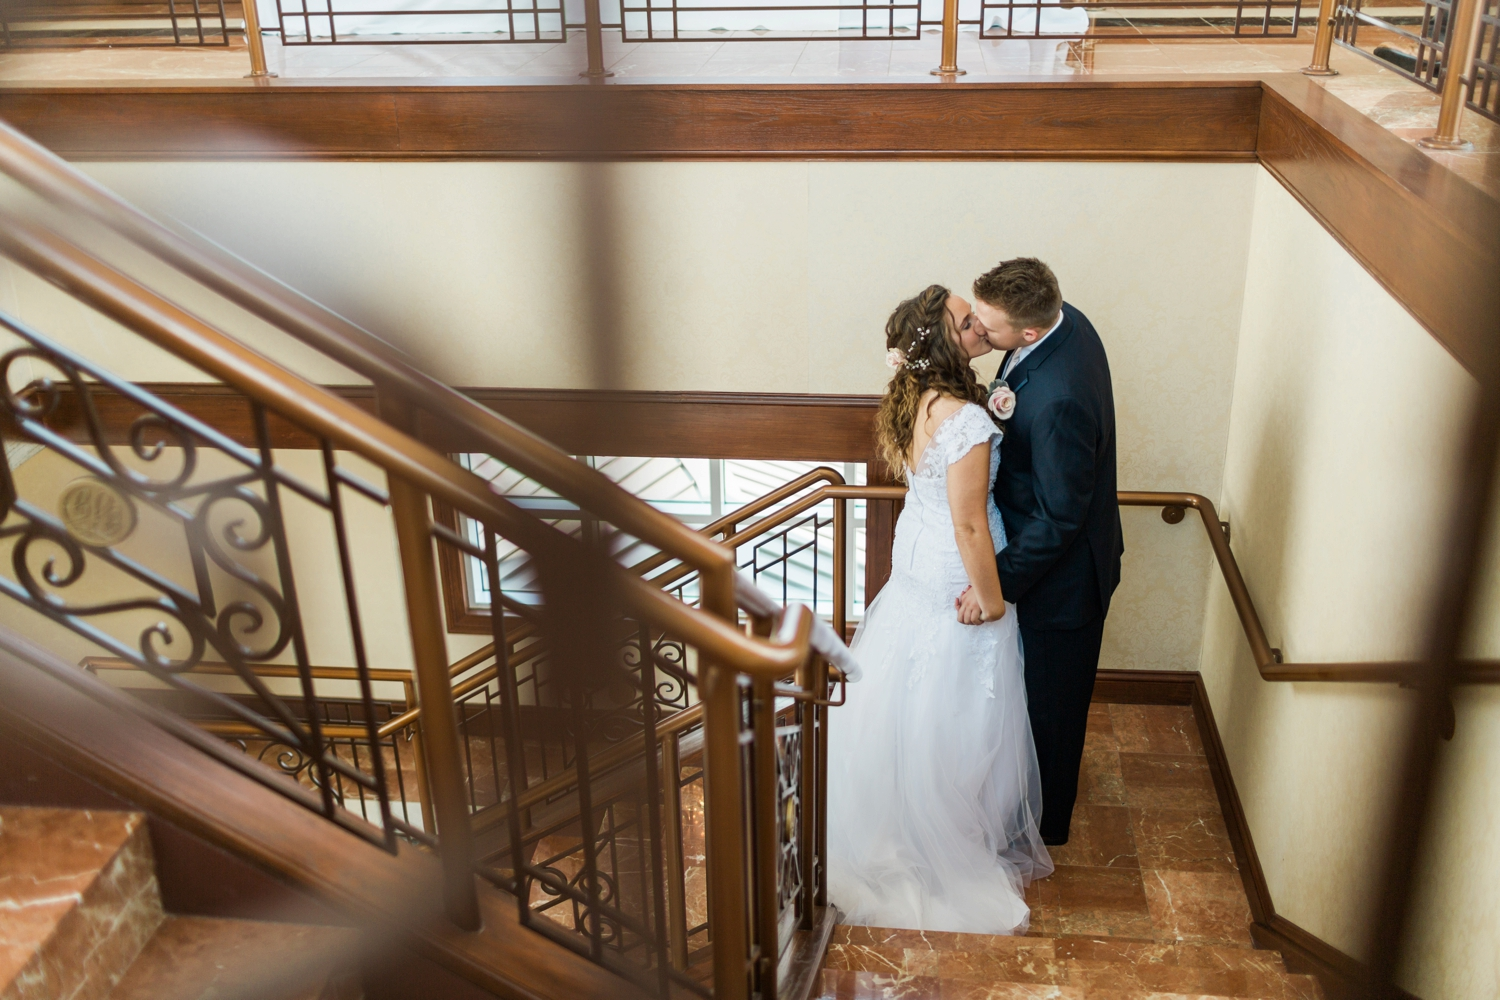 Community_Life_Center_Indianapolis_Indiana_Wedding_Photographer_Chloe_Luka_Photography_6887.jpg